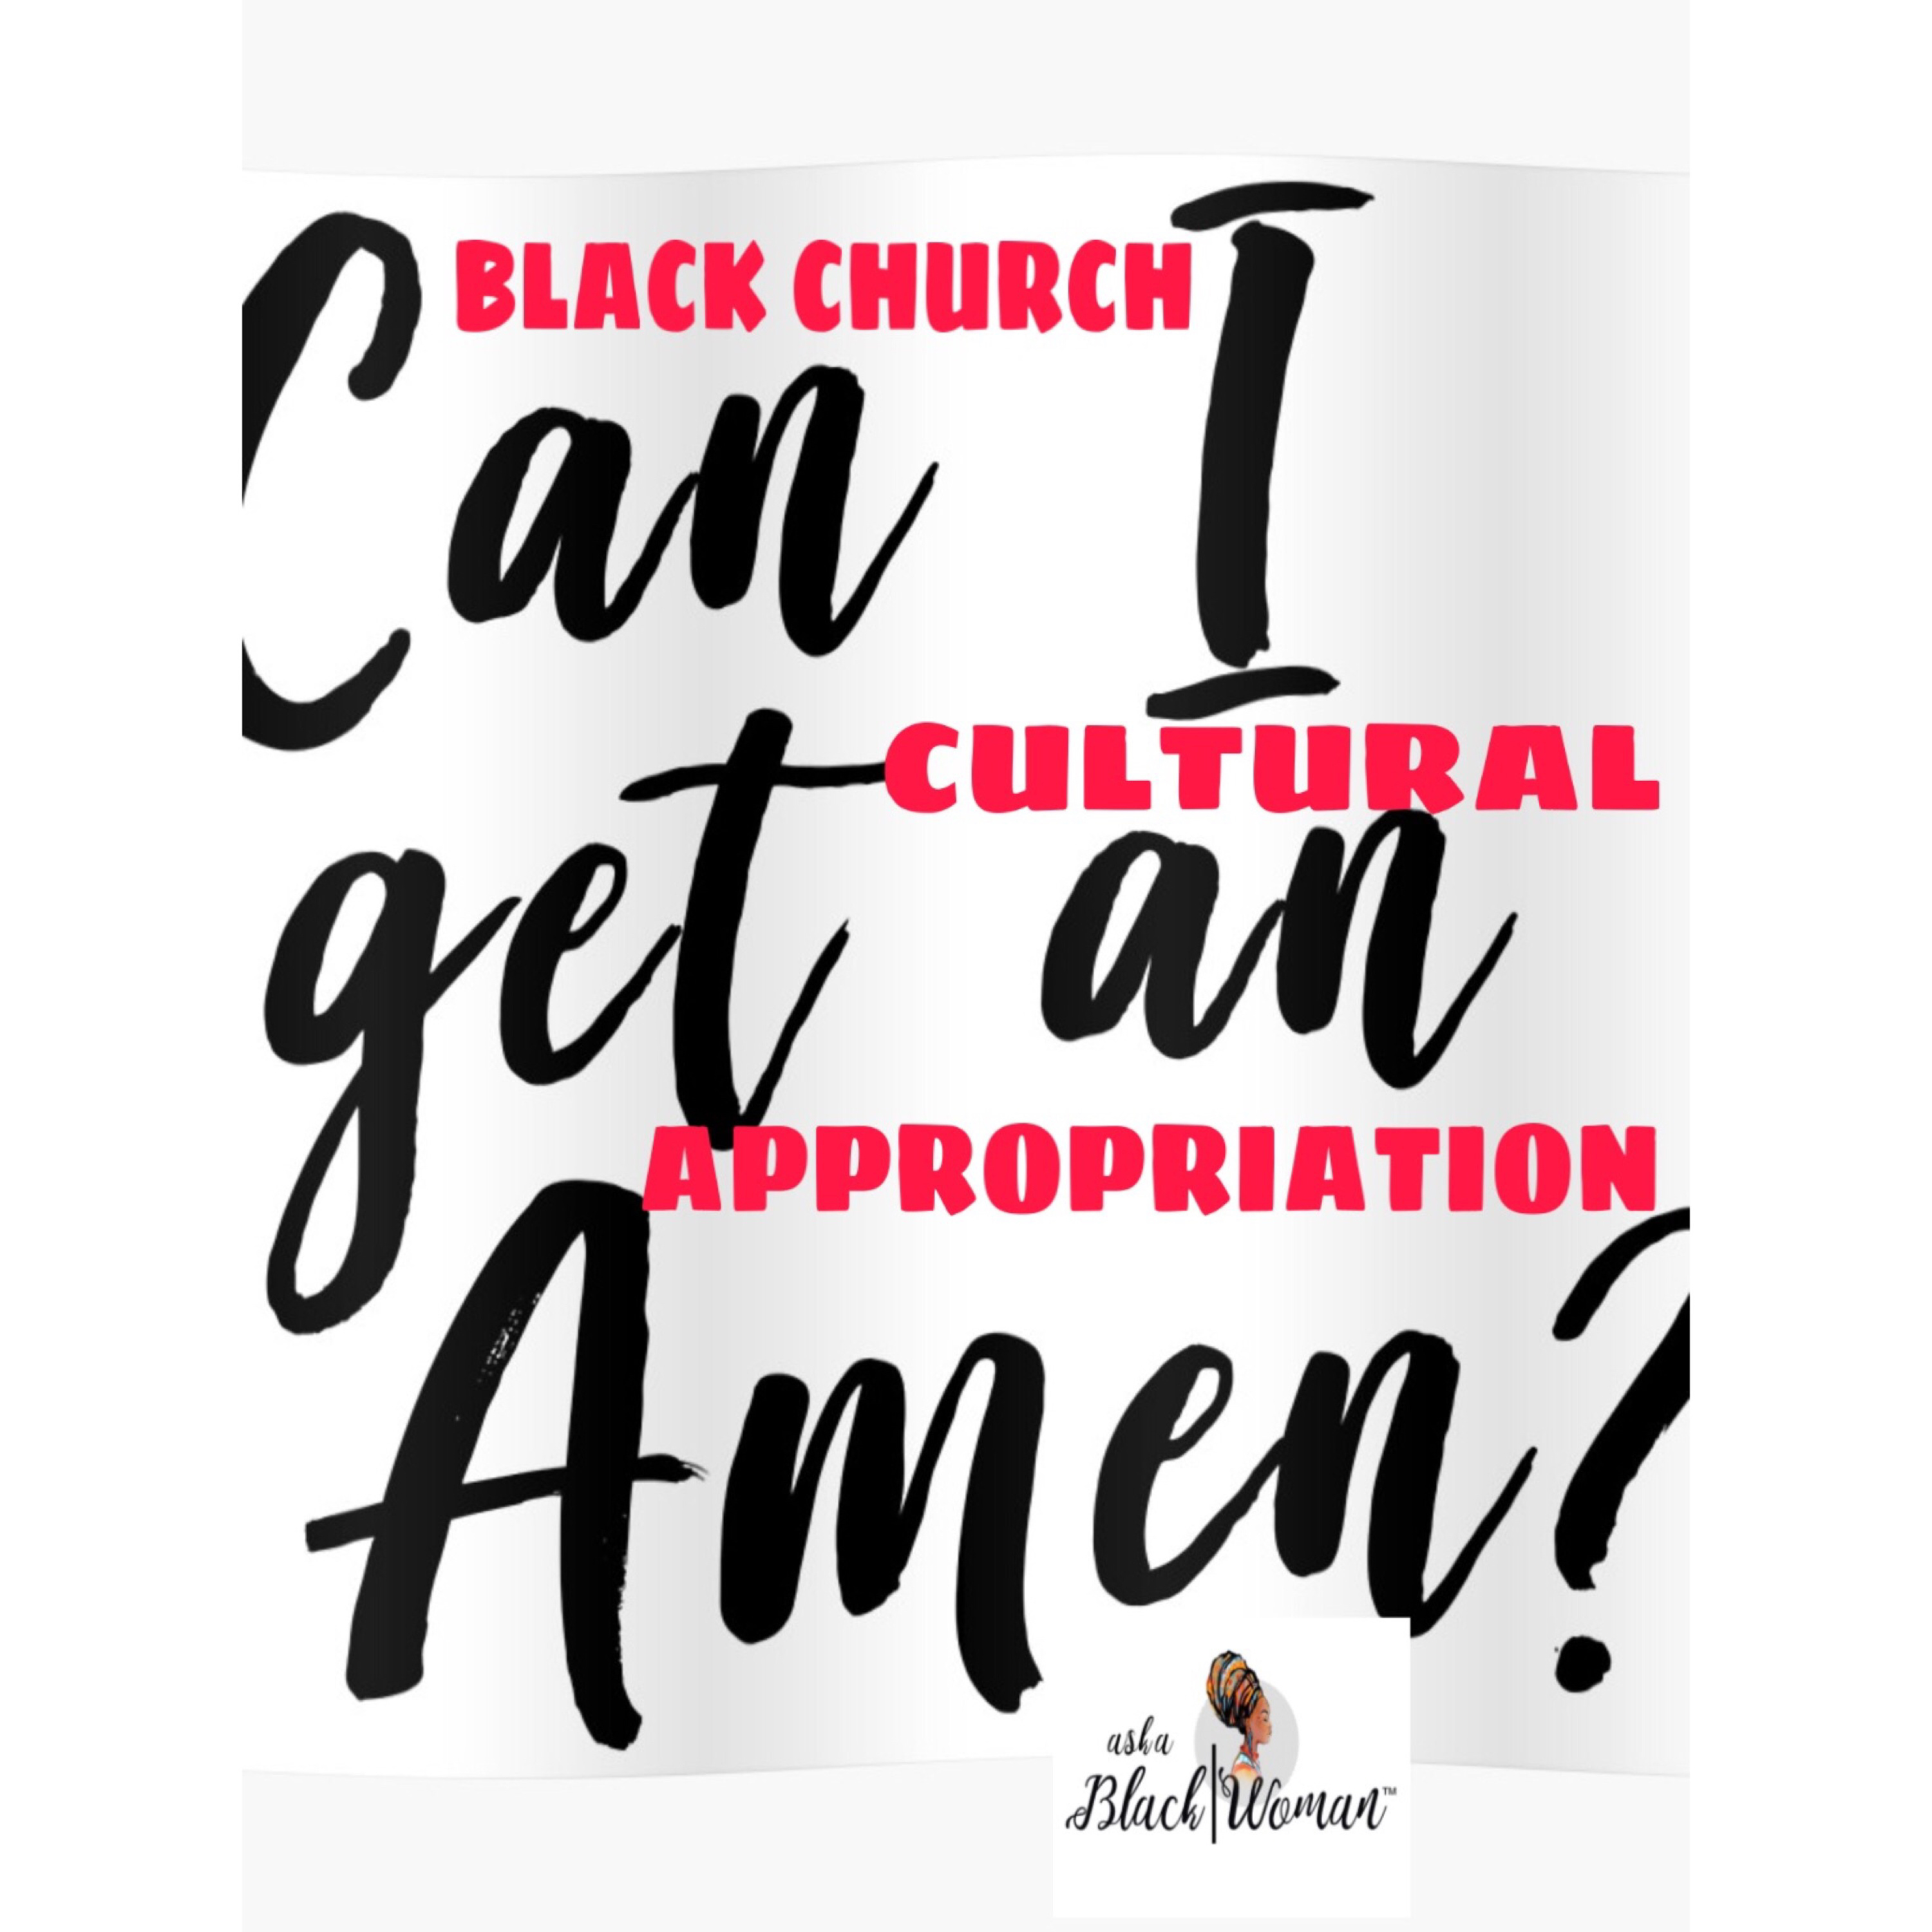 Black Church Culture Appropriation